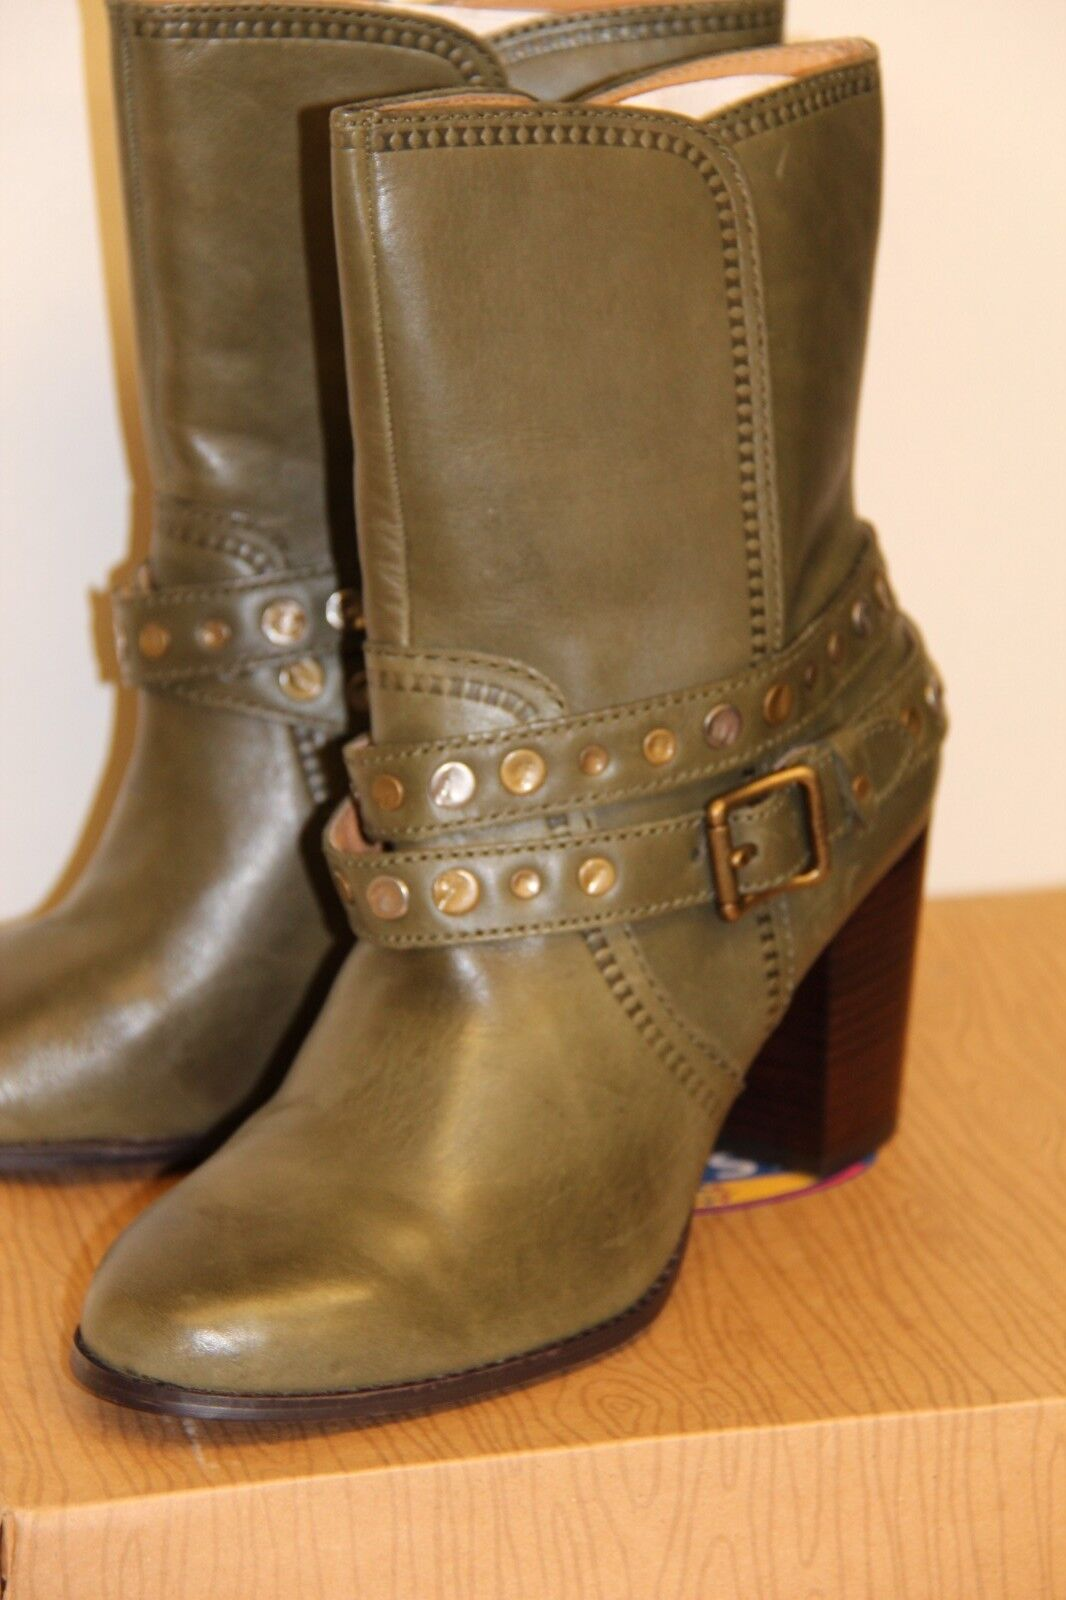 NIB Fossil DIDI Belted Bootie Ankle Stiefel Schuhes Sz 7.5 M Olive Leder Heel